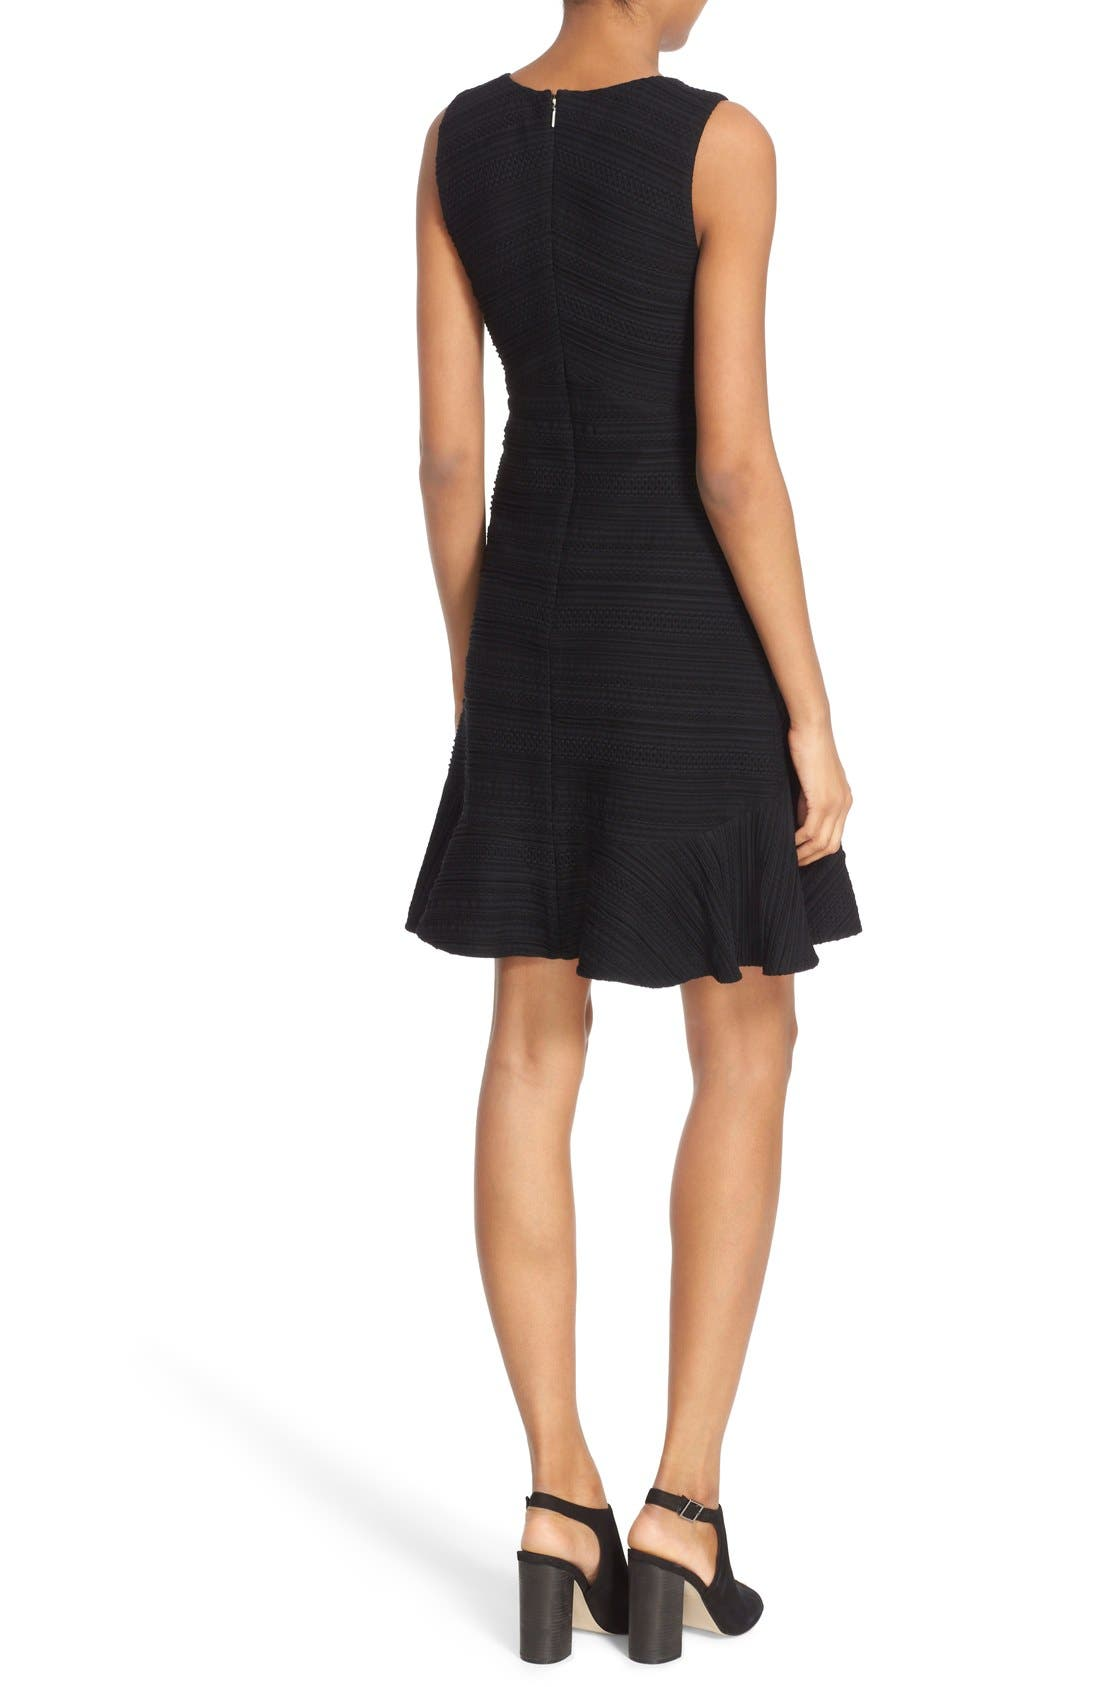 REBECCA TAYLOR, Sleeveless V-Neck Texture Knit Fit & Flare Dress, Alternate thumbnail 3, color, 001